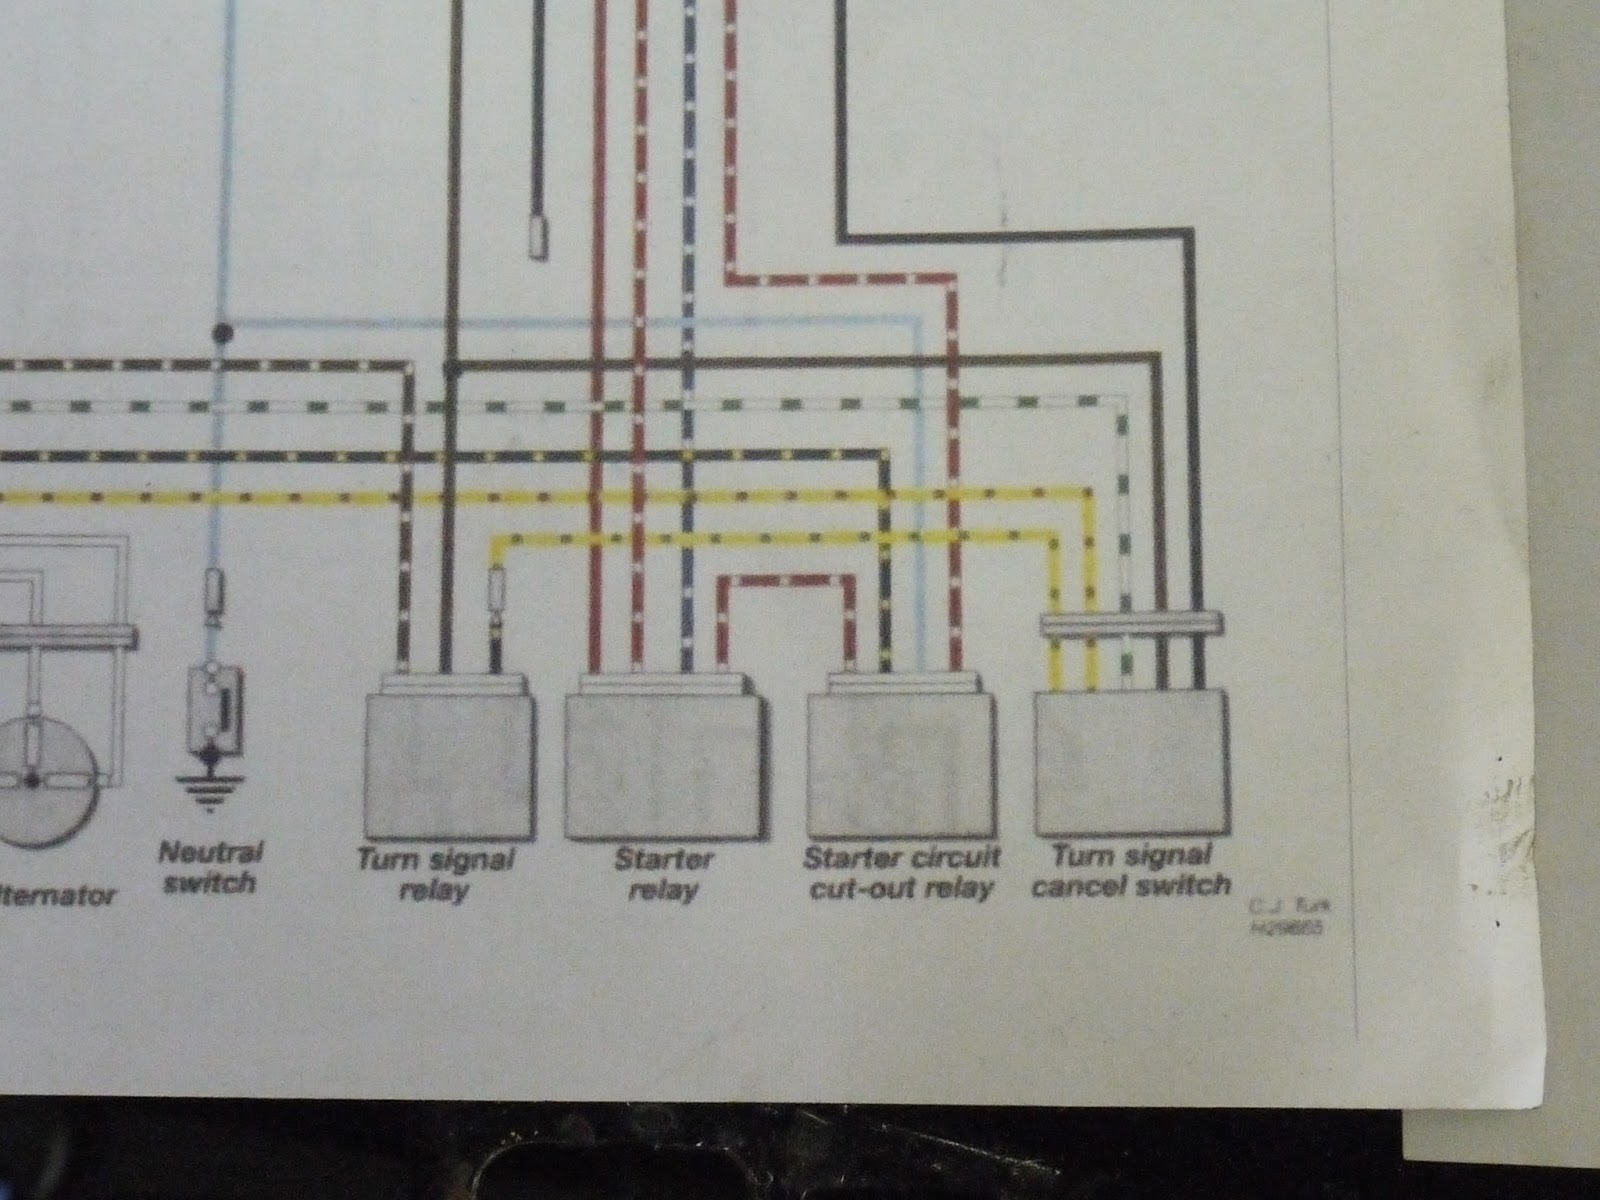 medium resolution of the solenoid on the right is the one we want to eliminate the light blue cable comes down from the neutral switch and the black and yellow one from the